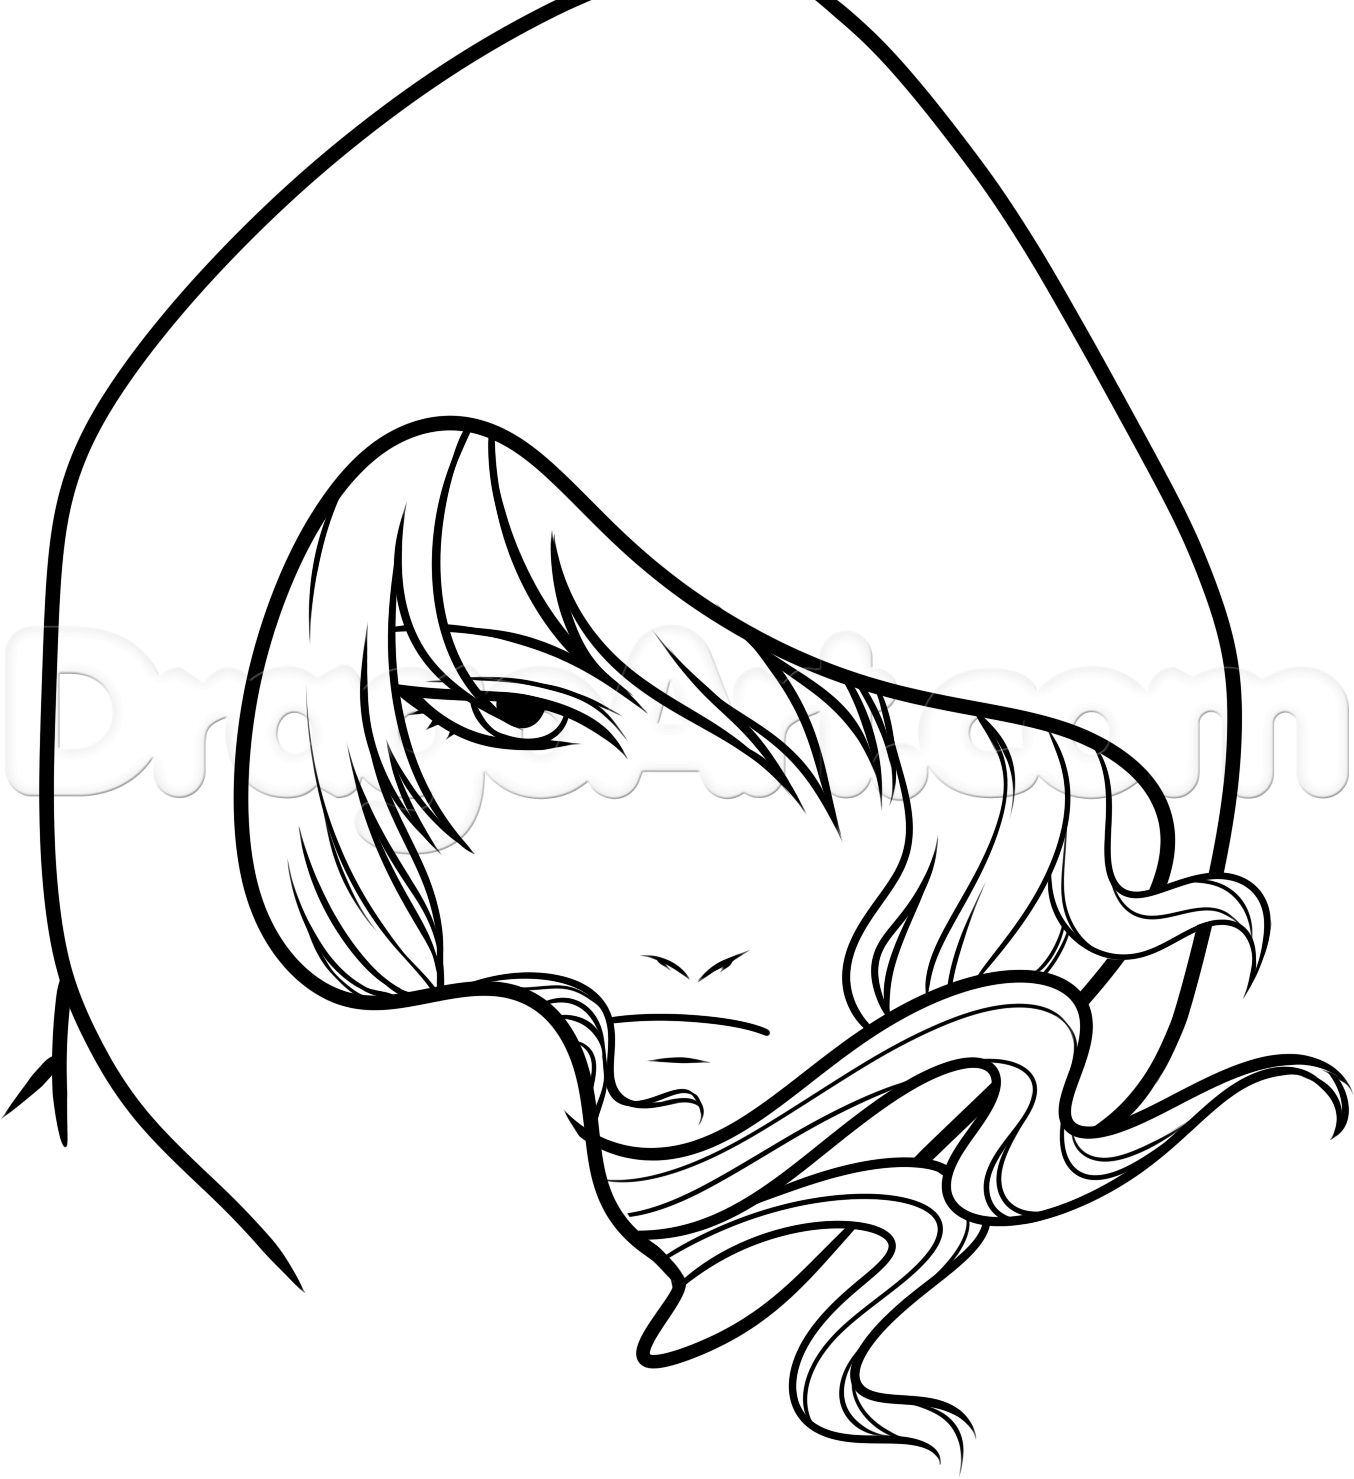 1354x1479 Anime Characters To Draw How To Draw A Hooded Anime Character